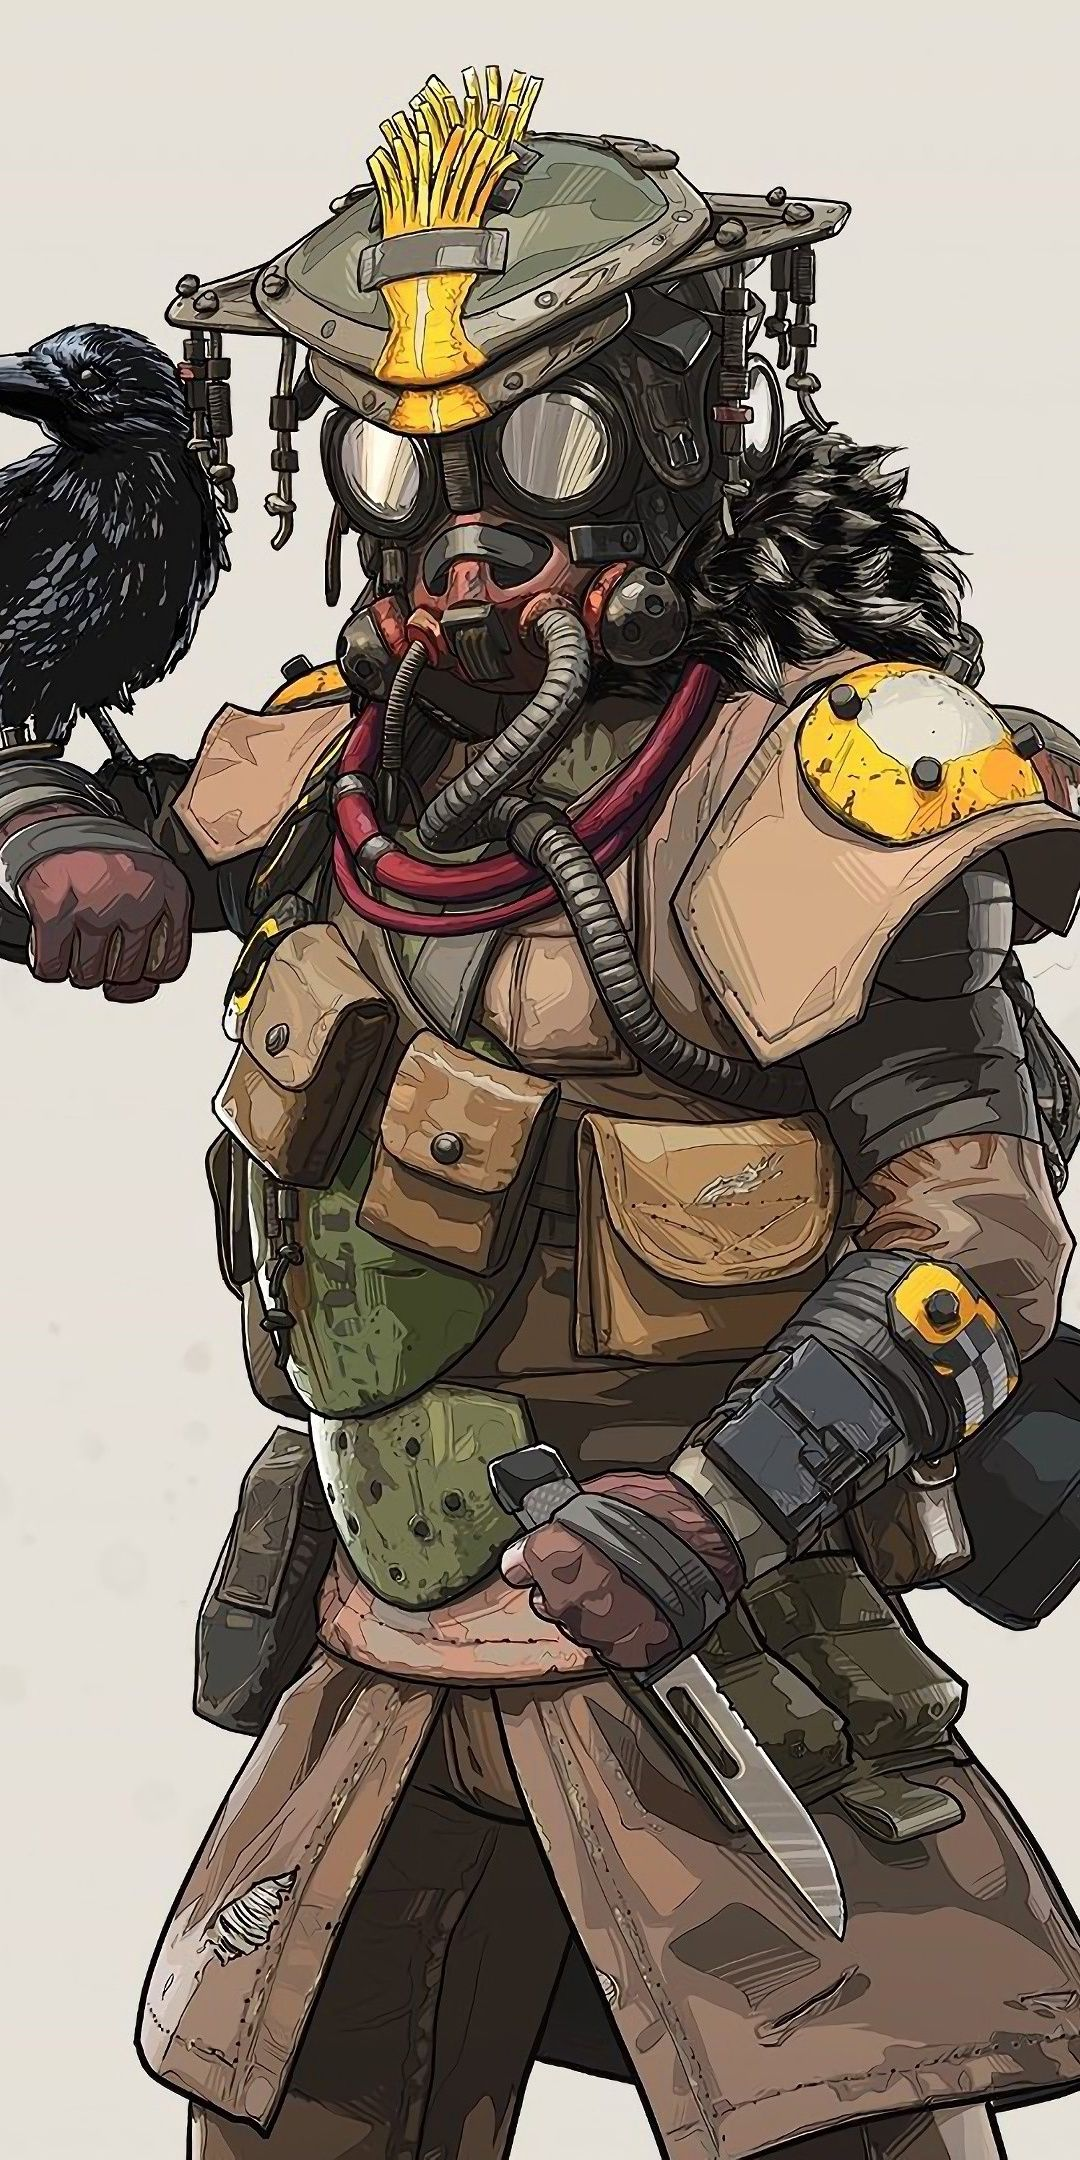 Bloodhound, Apex Legends, art, 1080x2160 wallpaper